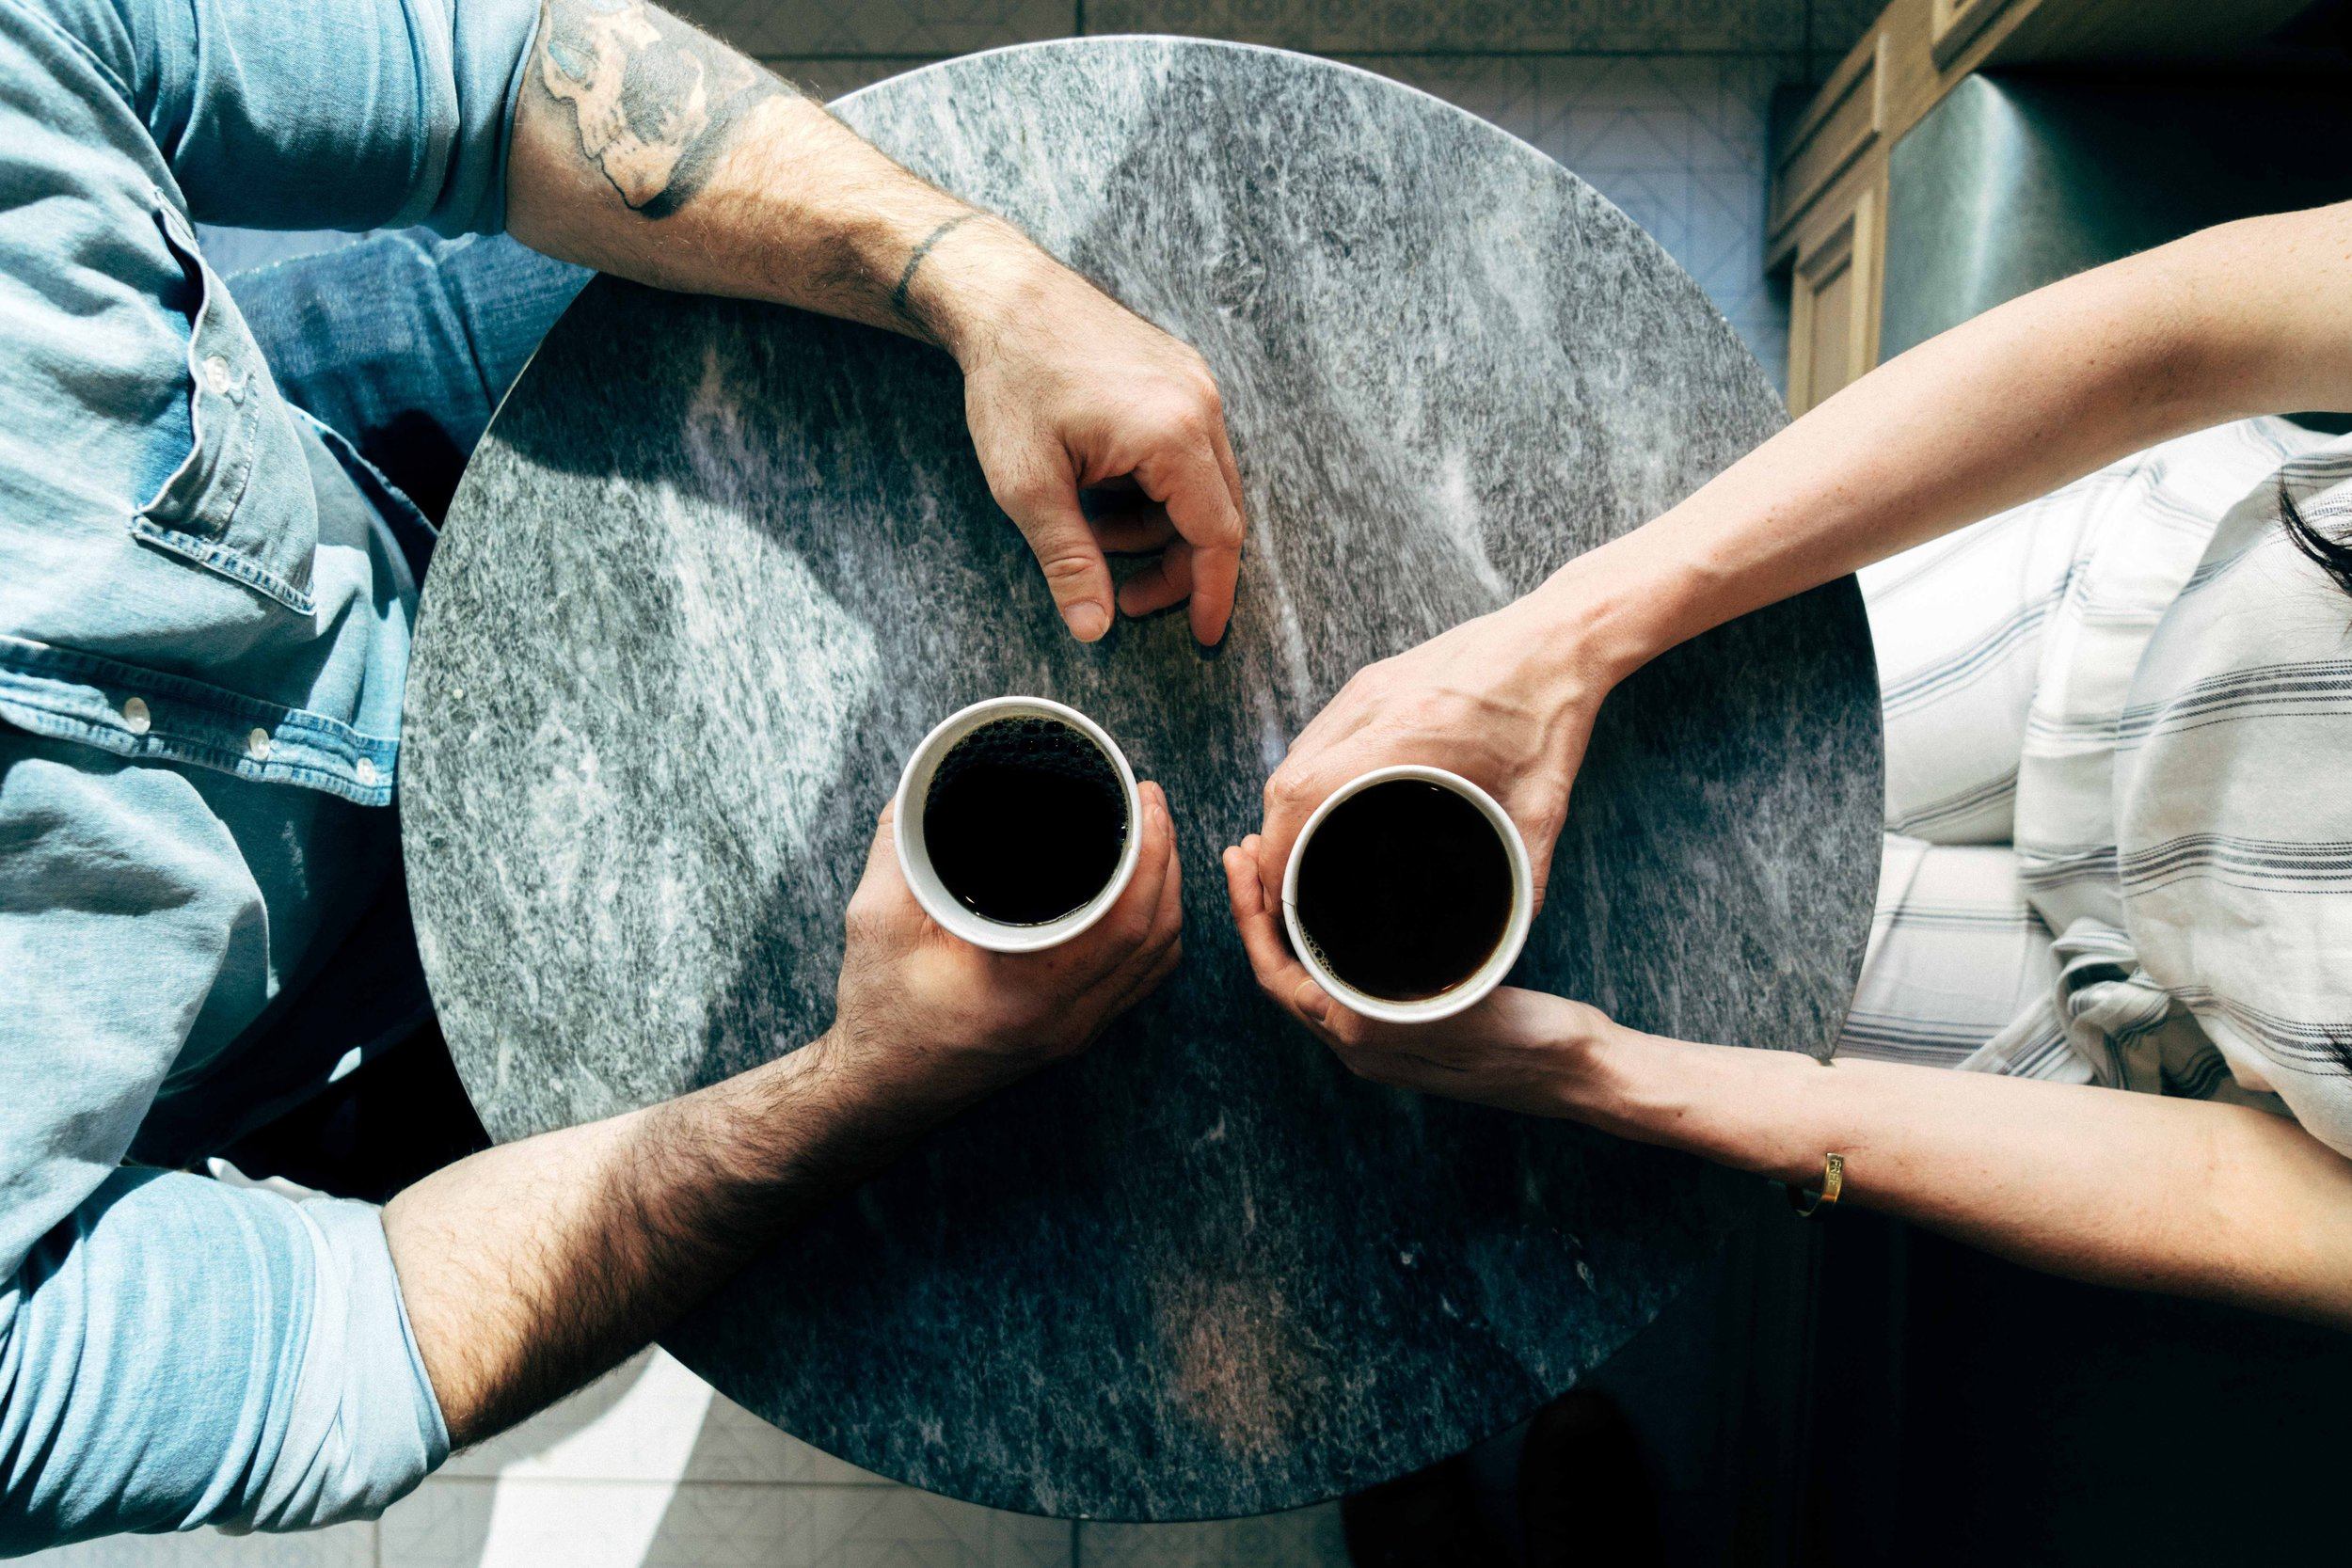 HAVE A CONVERSATION WITH A MENTOR - Watch a video with your mentor and have a conversation together.